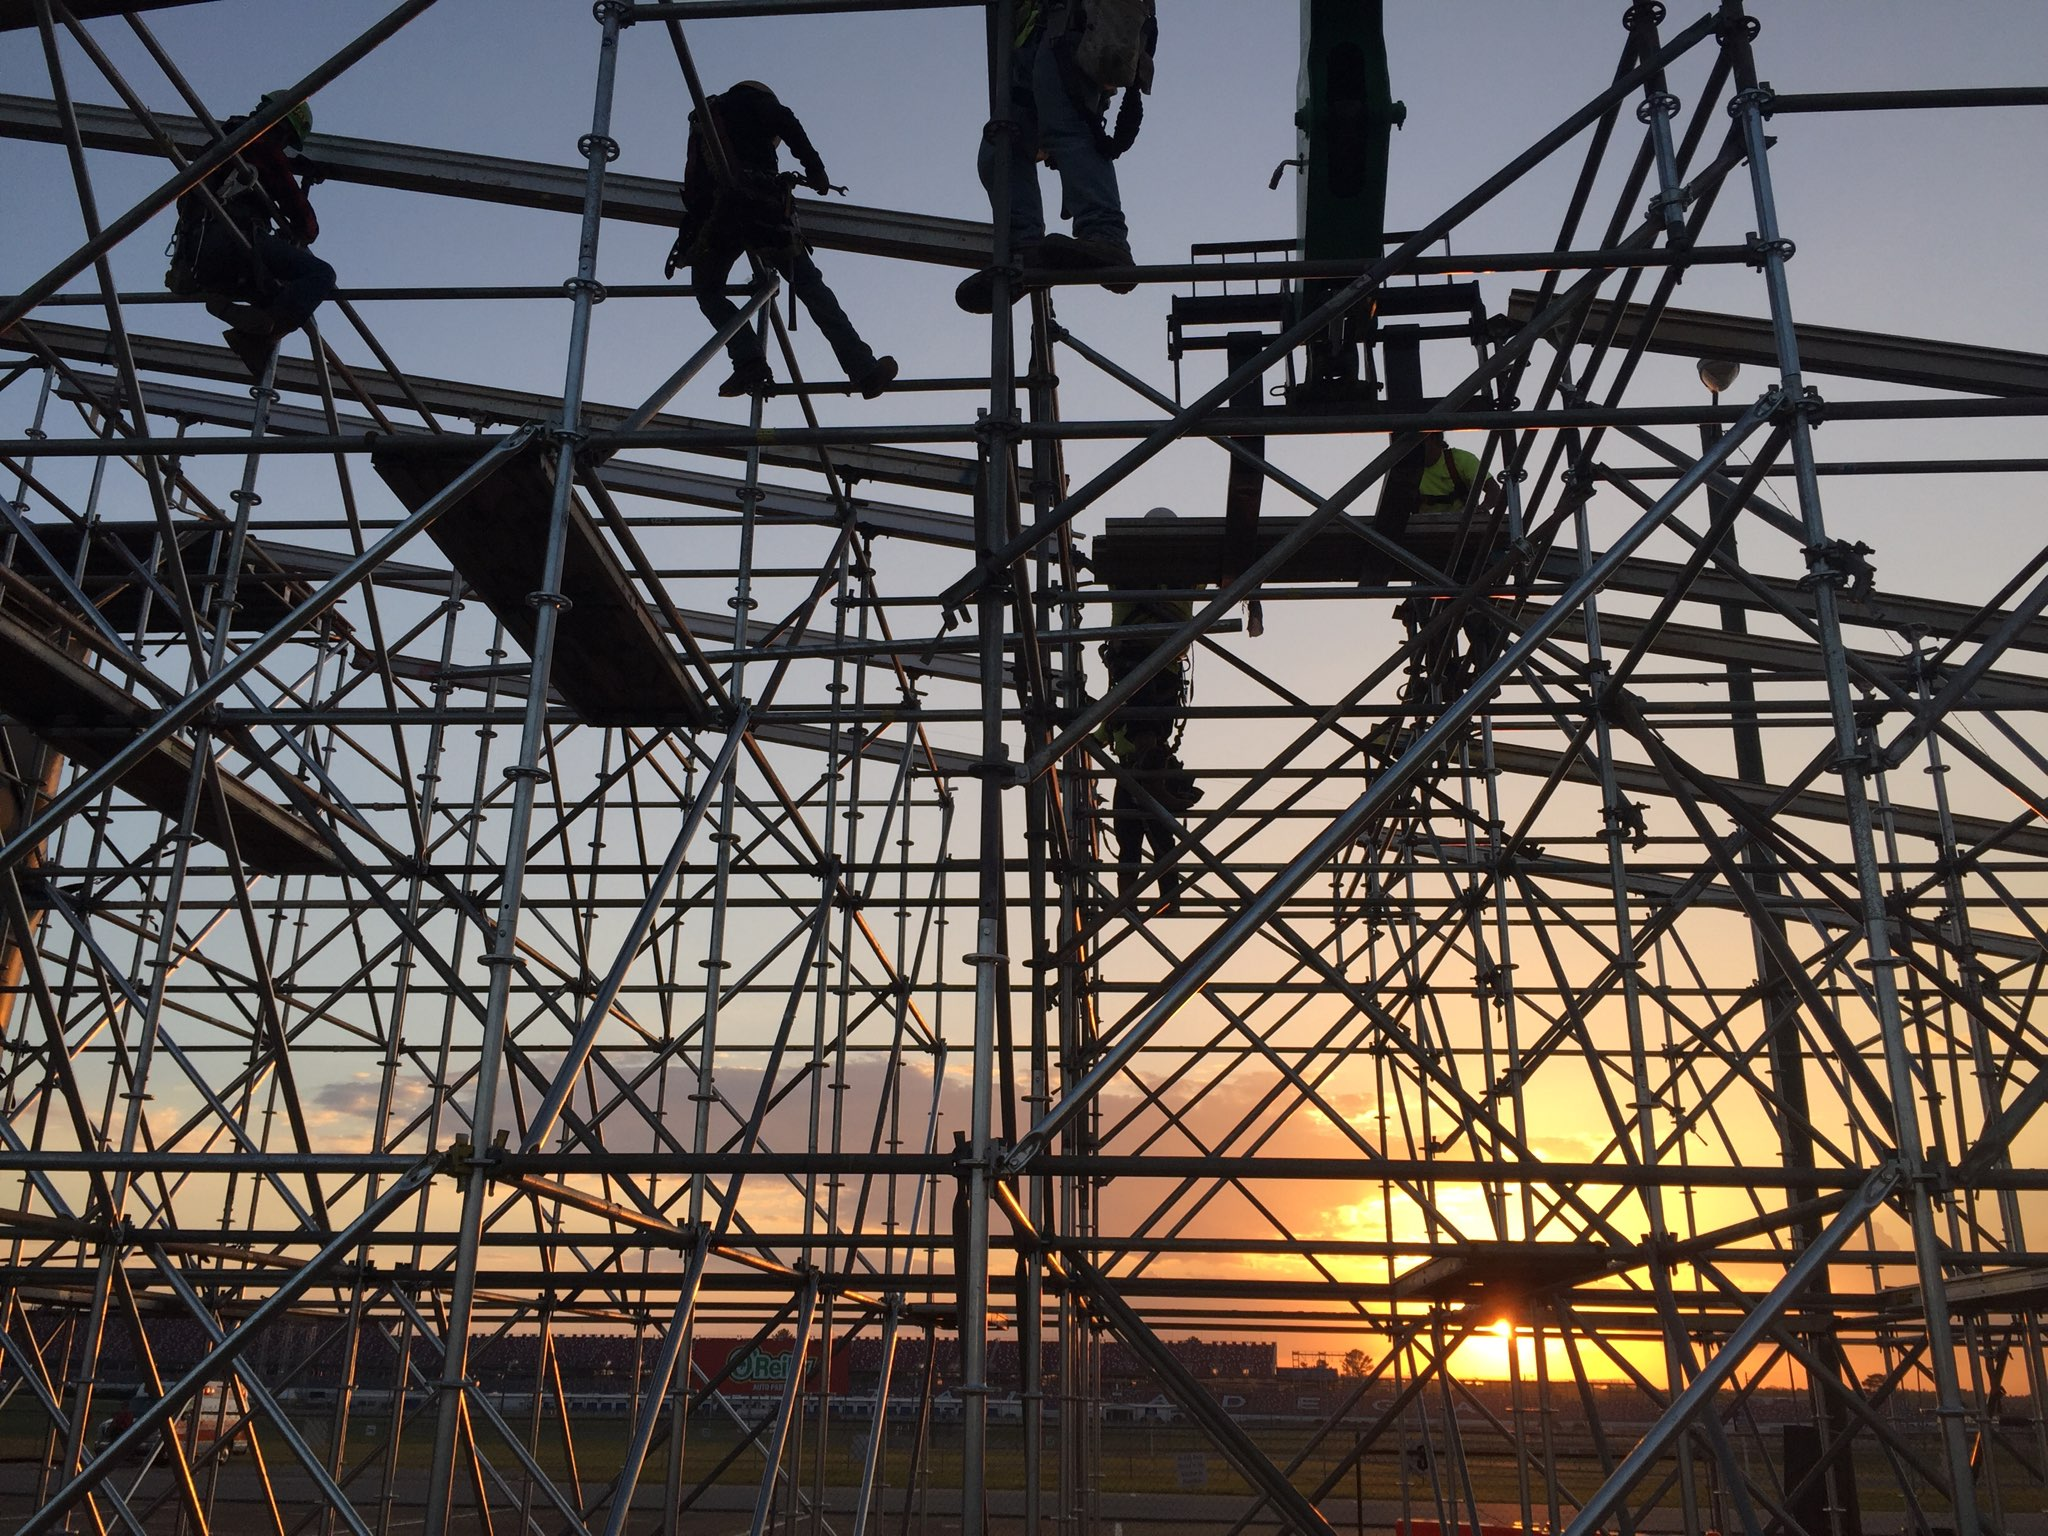 Sunset behind the scaffold at Talladega